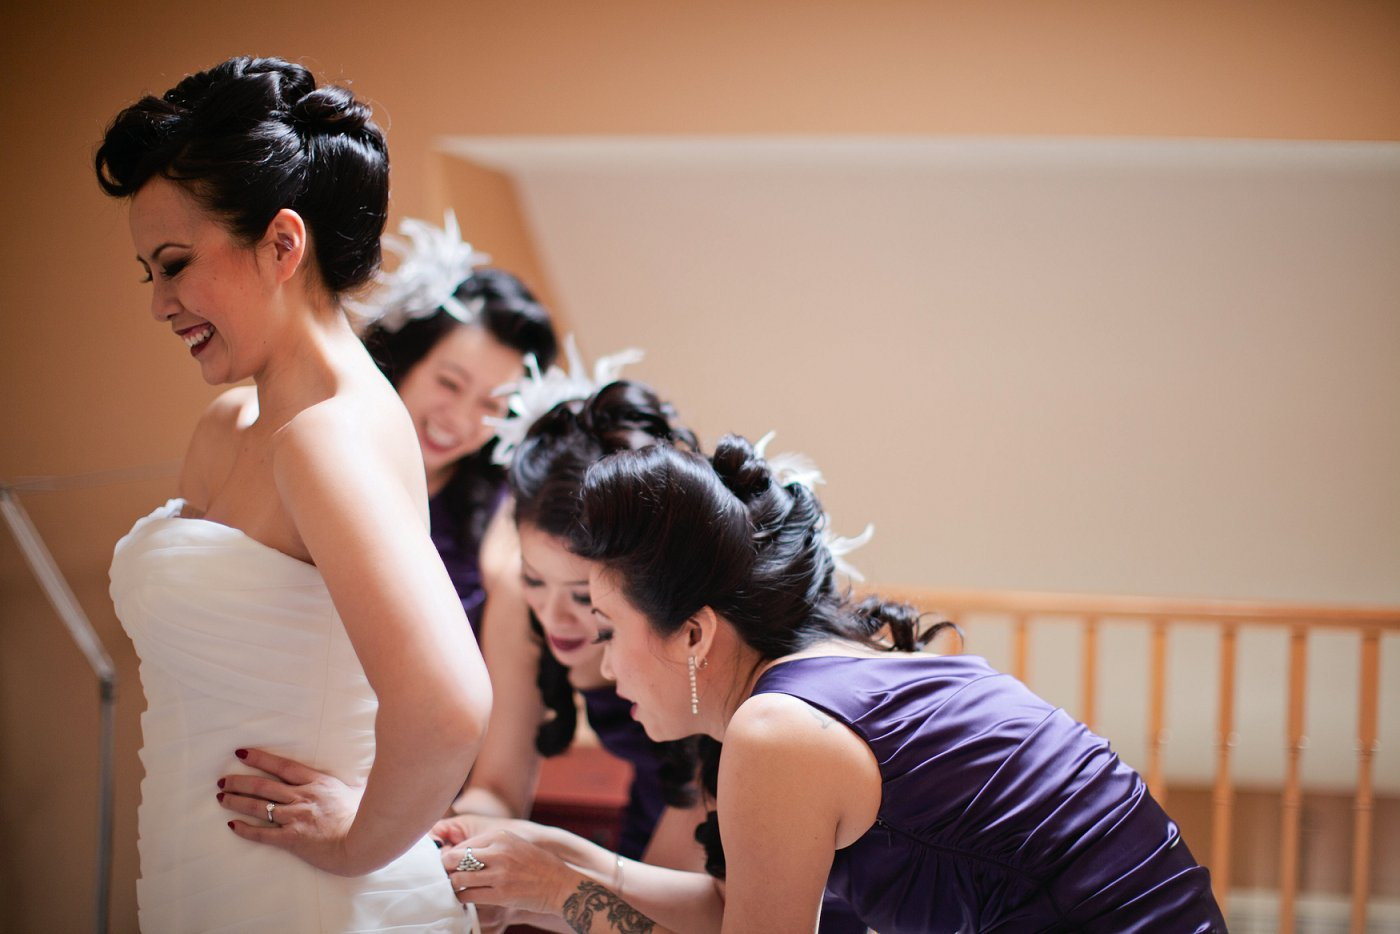 bride-getting-ready-tips_1752